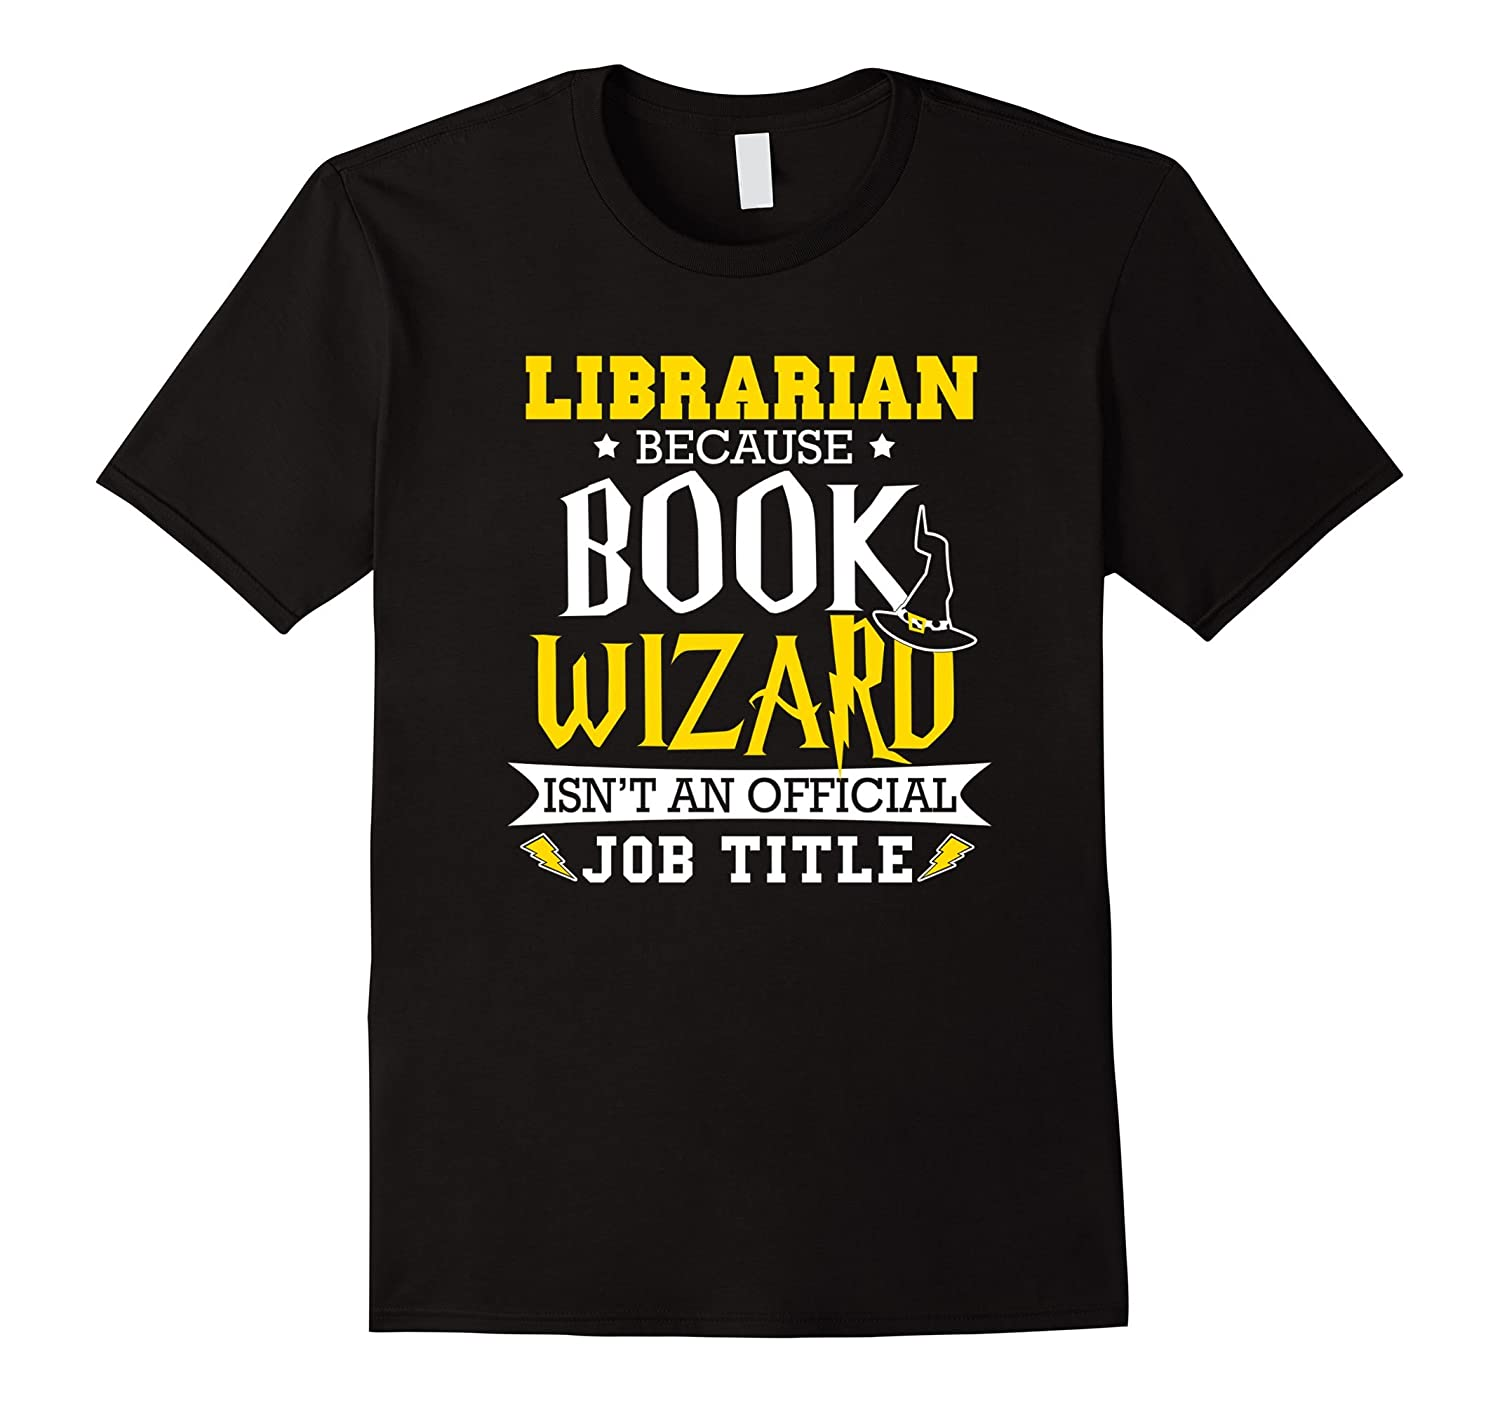 Librarian Funny Gift T-Shirt BOOK WIZARD ISN'T OFFICIAL-FL